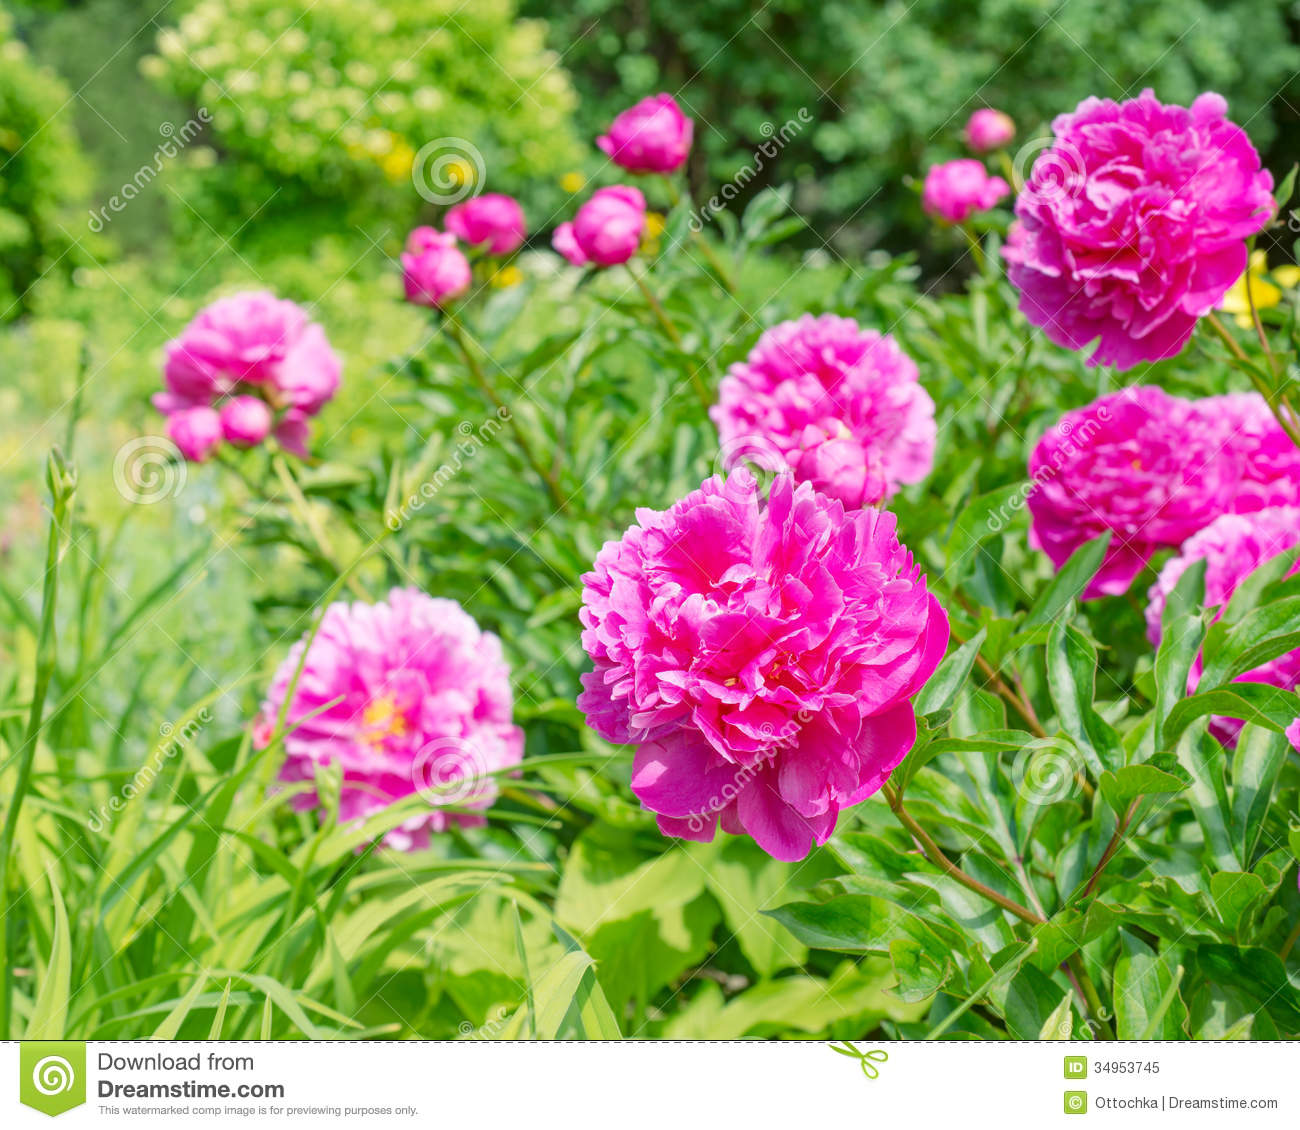 Pink peony flowers in the garden stock image image of gardening download pink peony flowers in the garden stock image image of gardening gift mightylinksfo